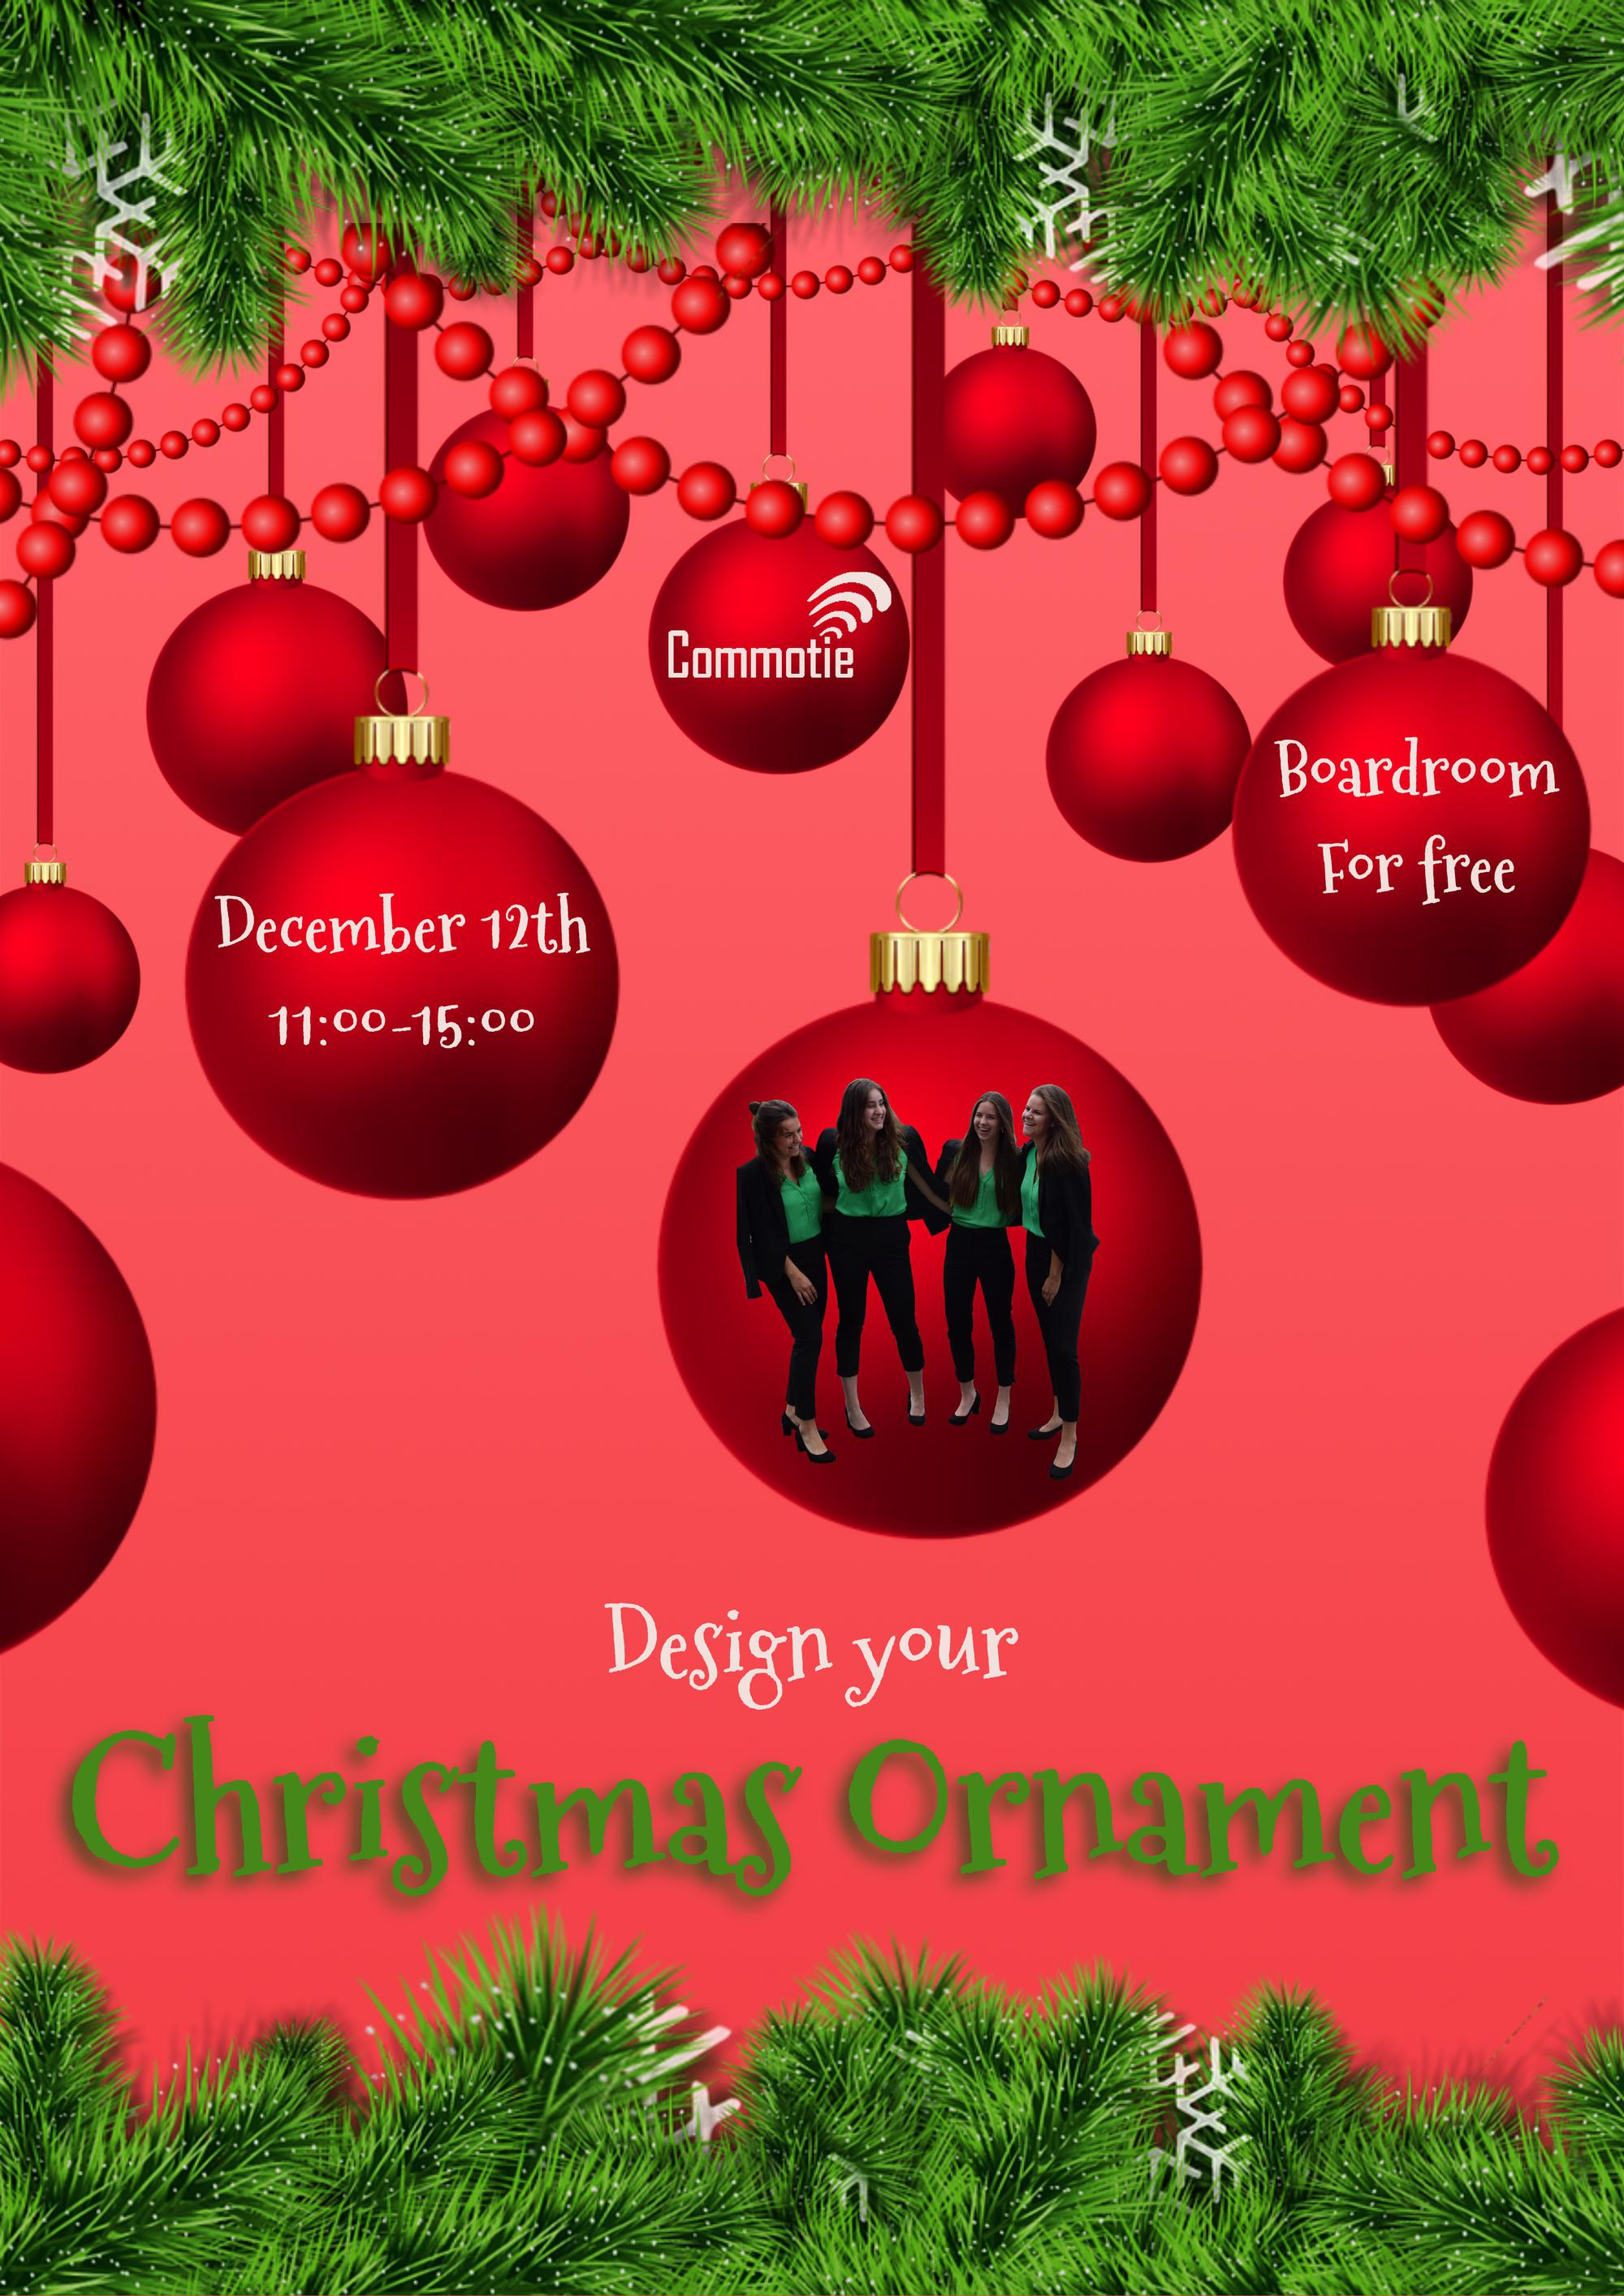 Boardroom Special: Design your Christmas ornament